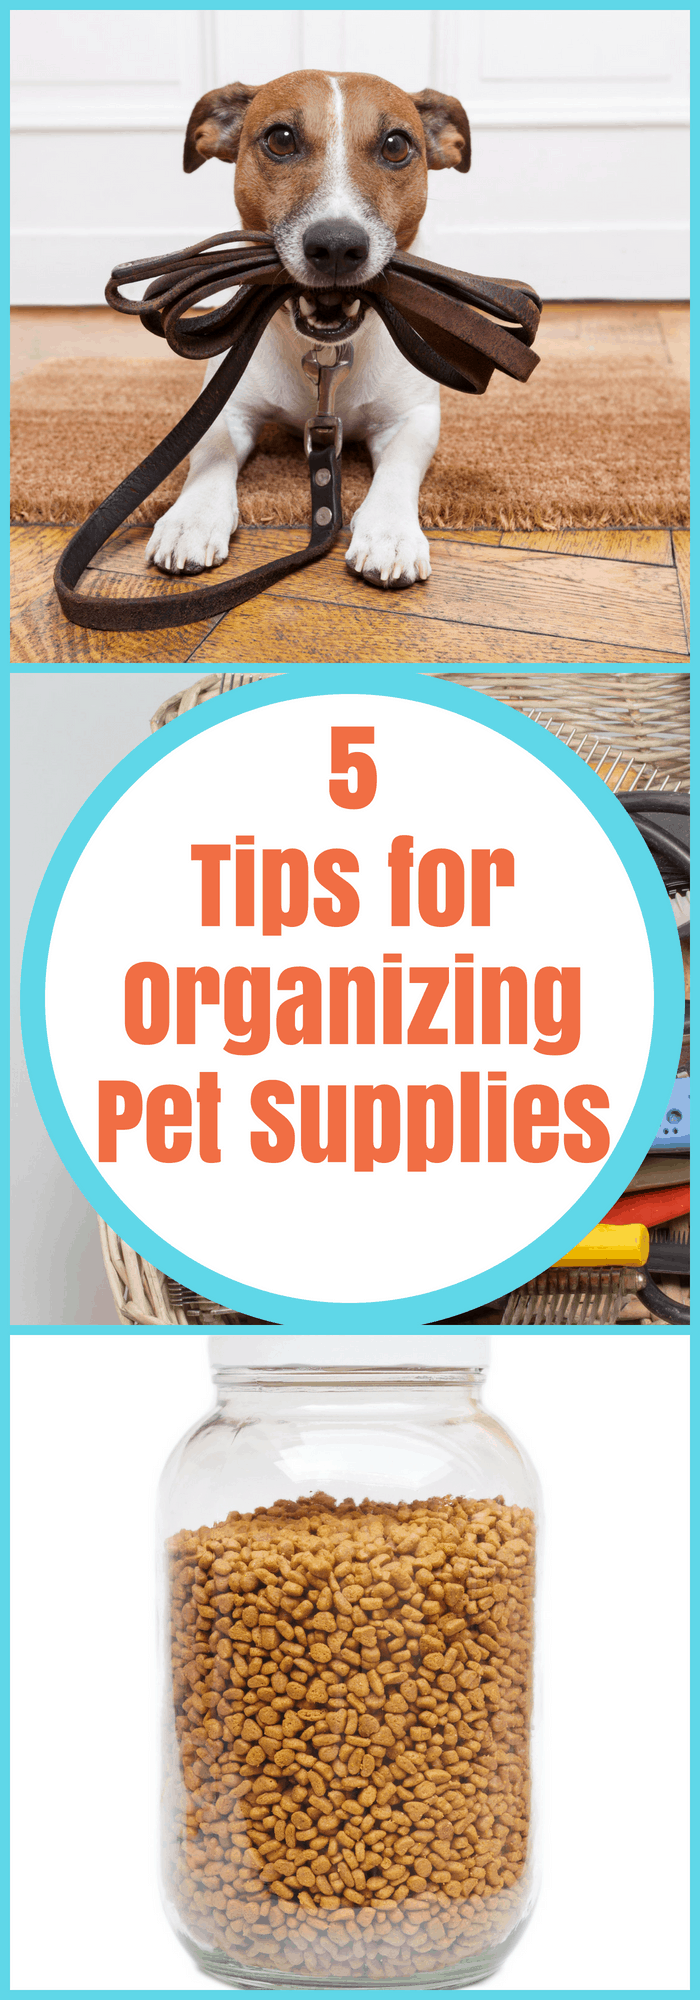 Pets--5 Tips for Organizing Pet Supplies--The Organized Mom